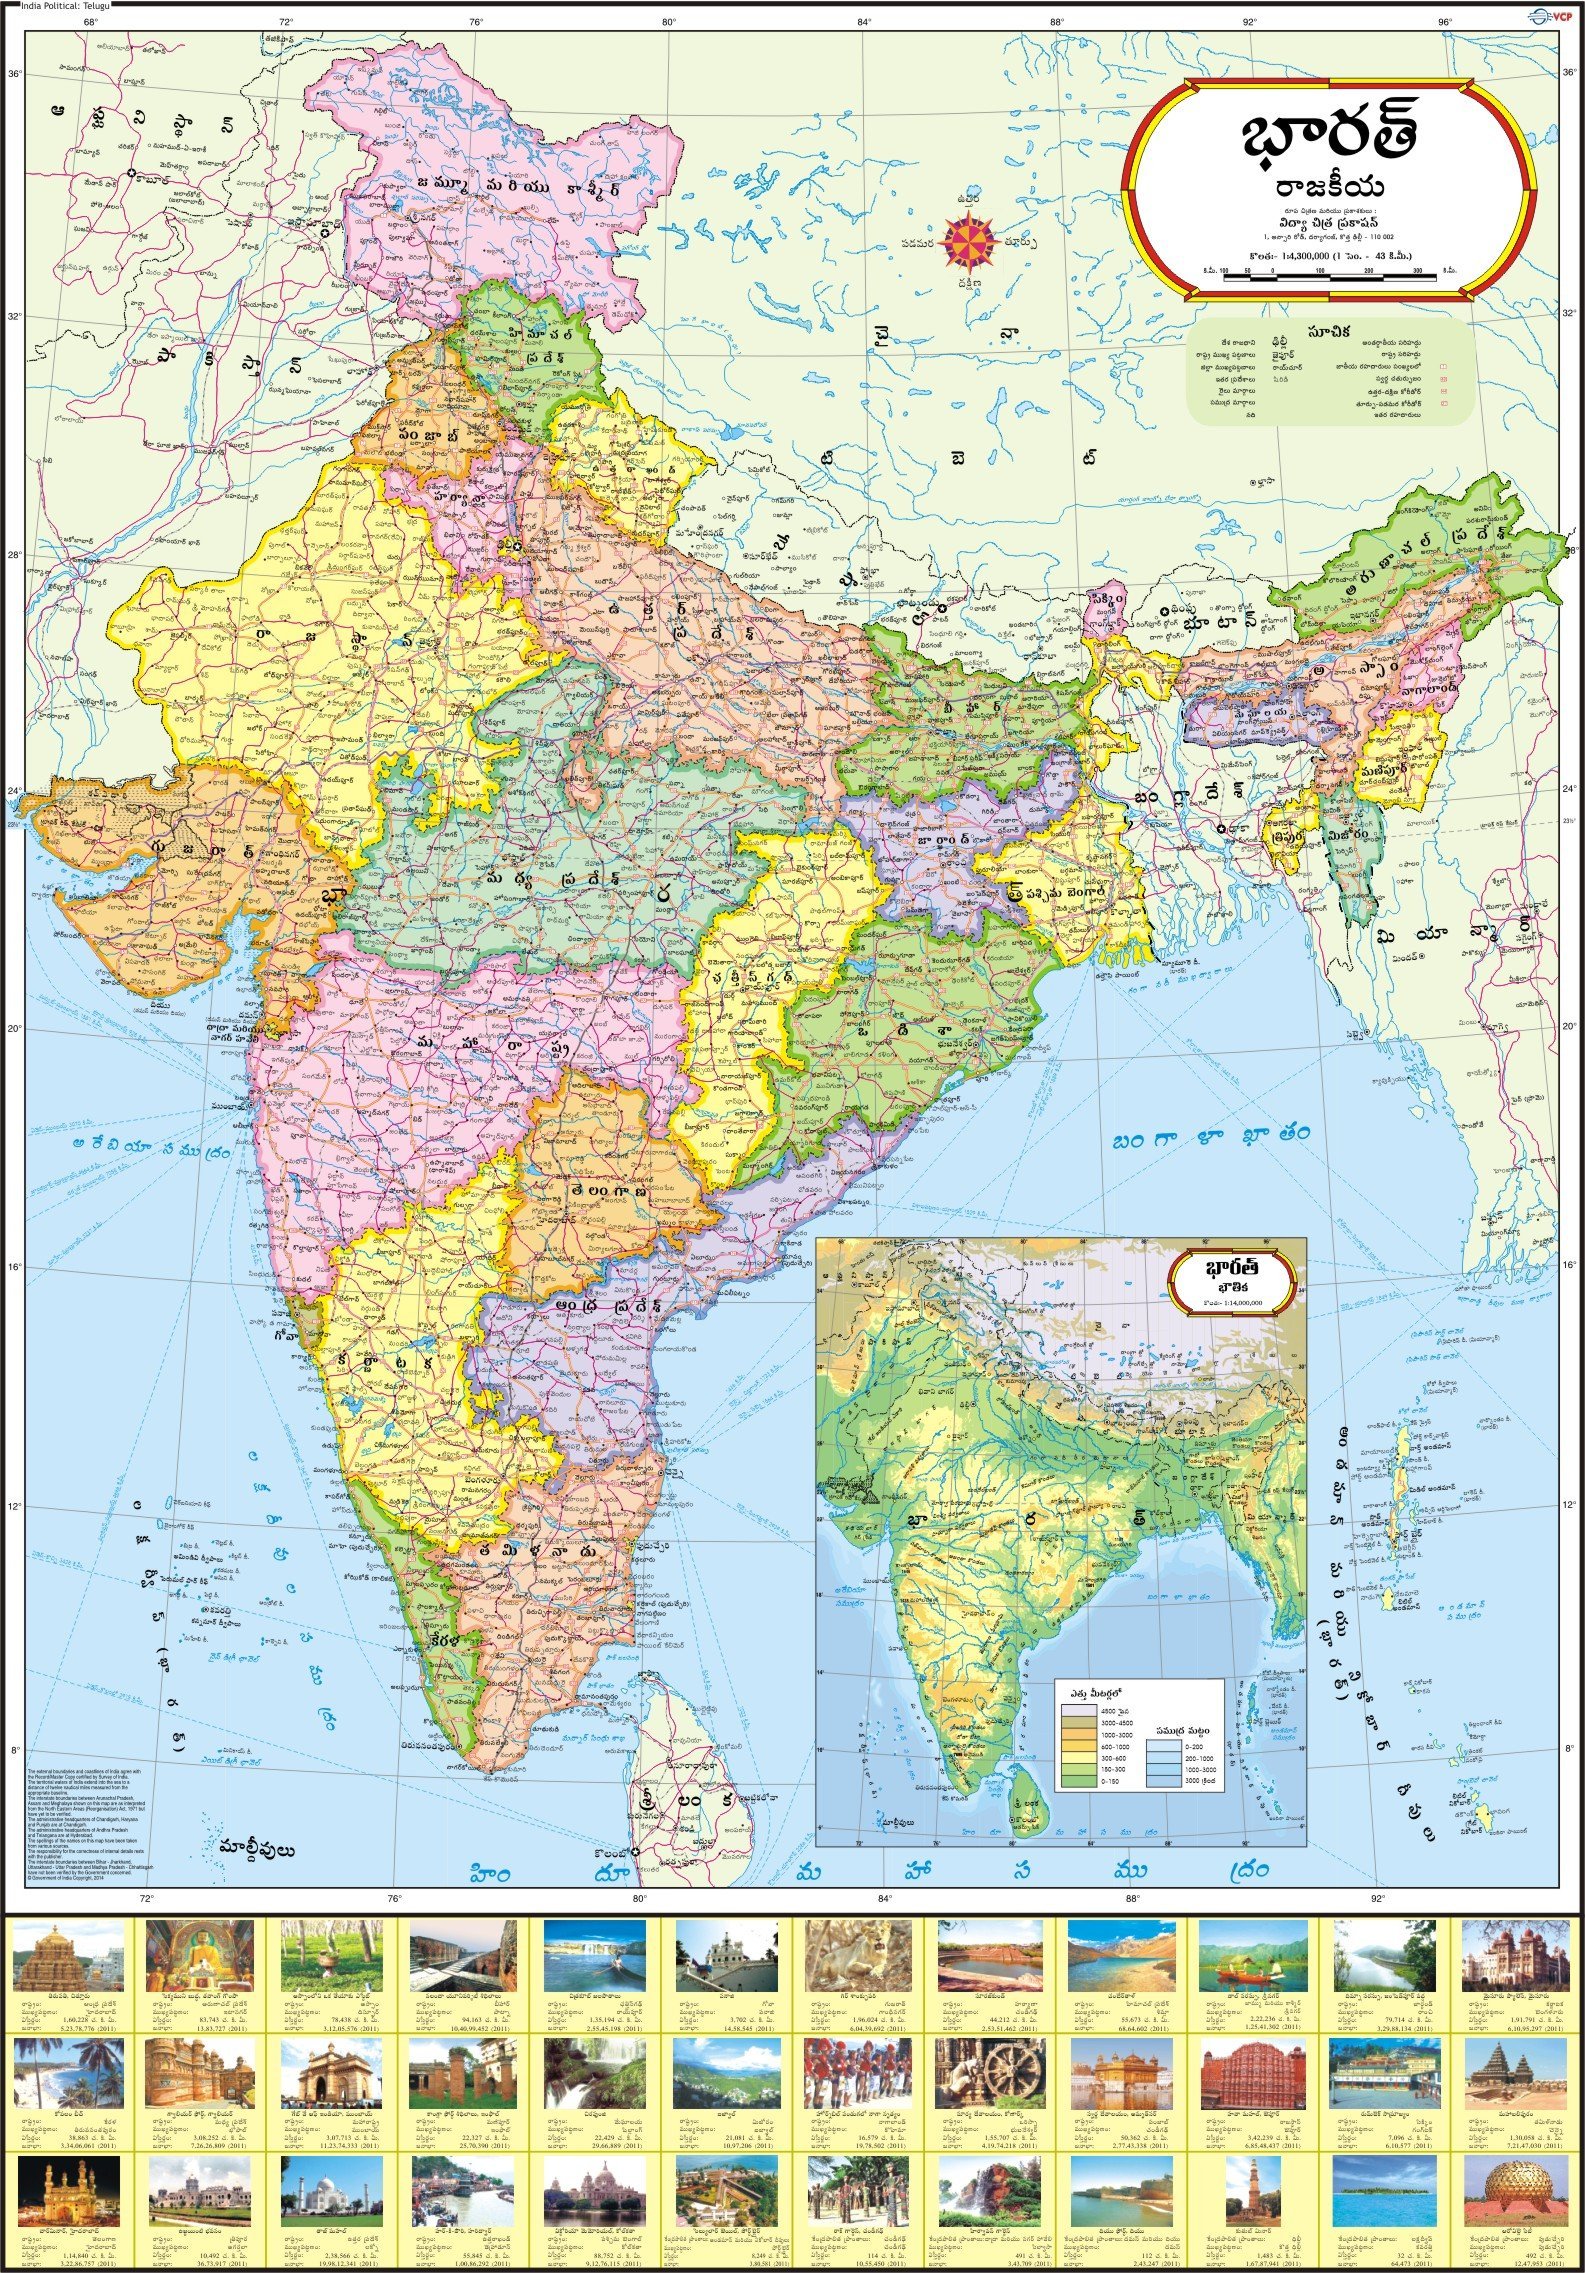 Buy india political map telugu book online at low prices in india buy india political map telugu book online at low prices in india india political map telugu reviews ratings amazon gumiabroncs Images